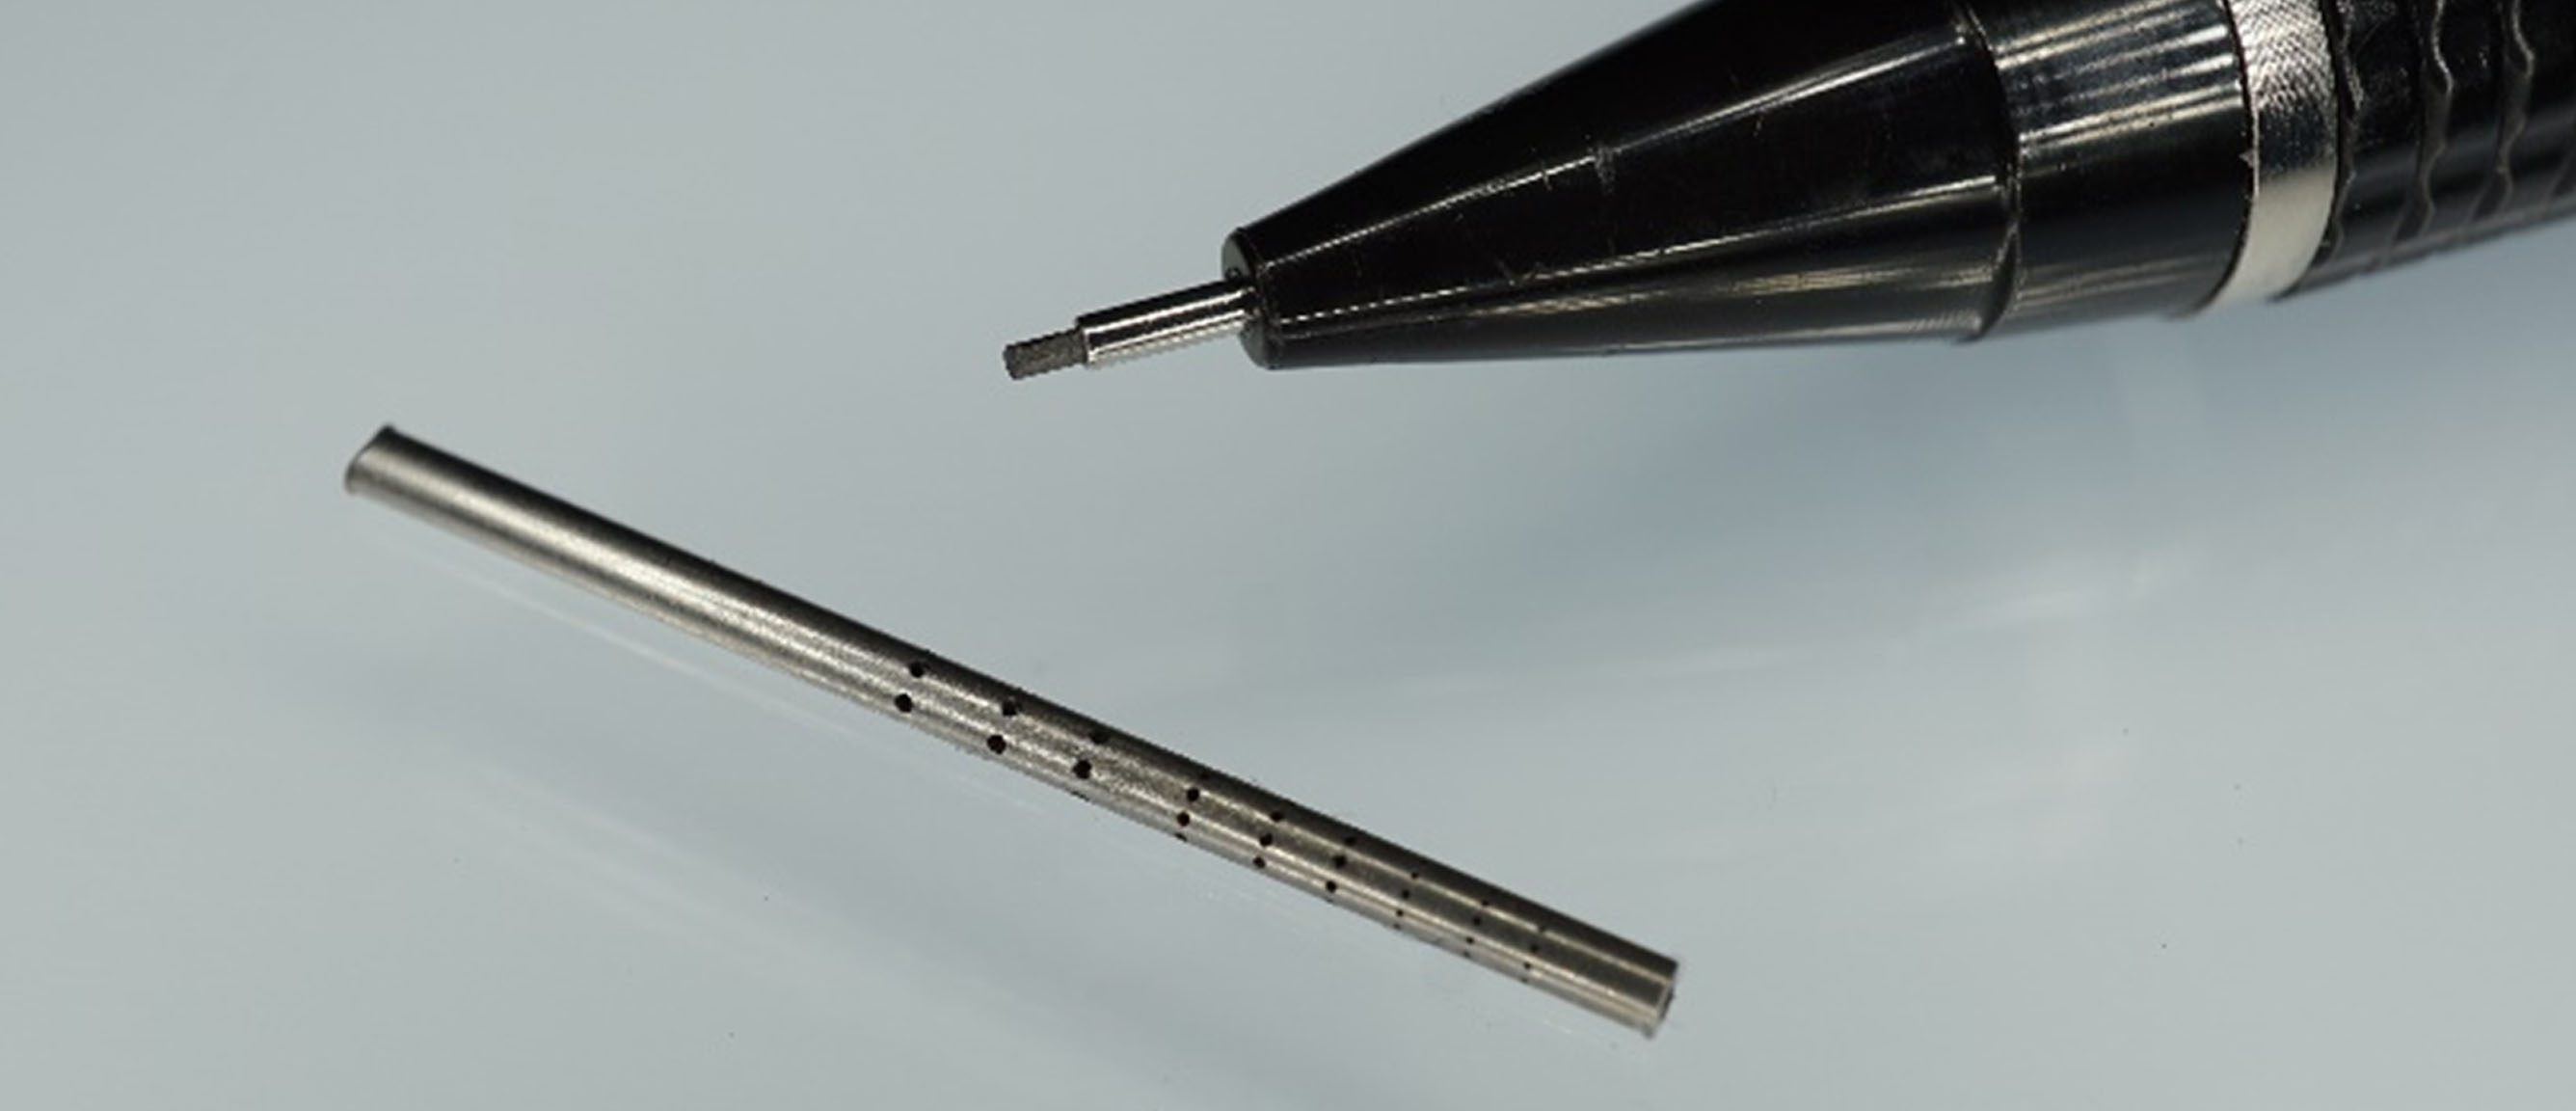 Visual representation of test cut stainless-steel tube